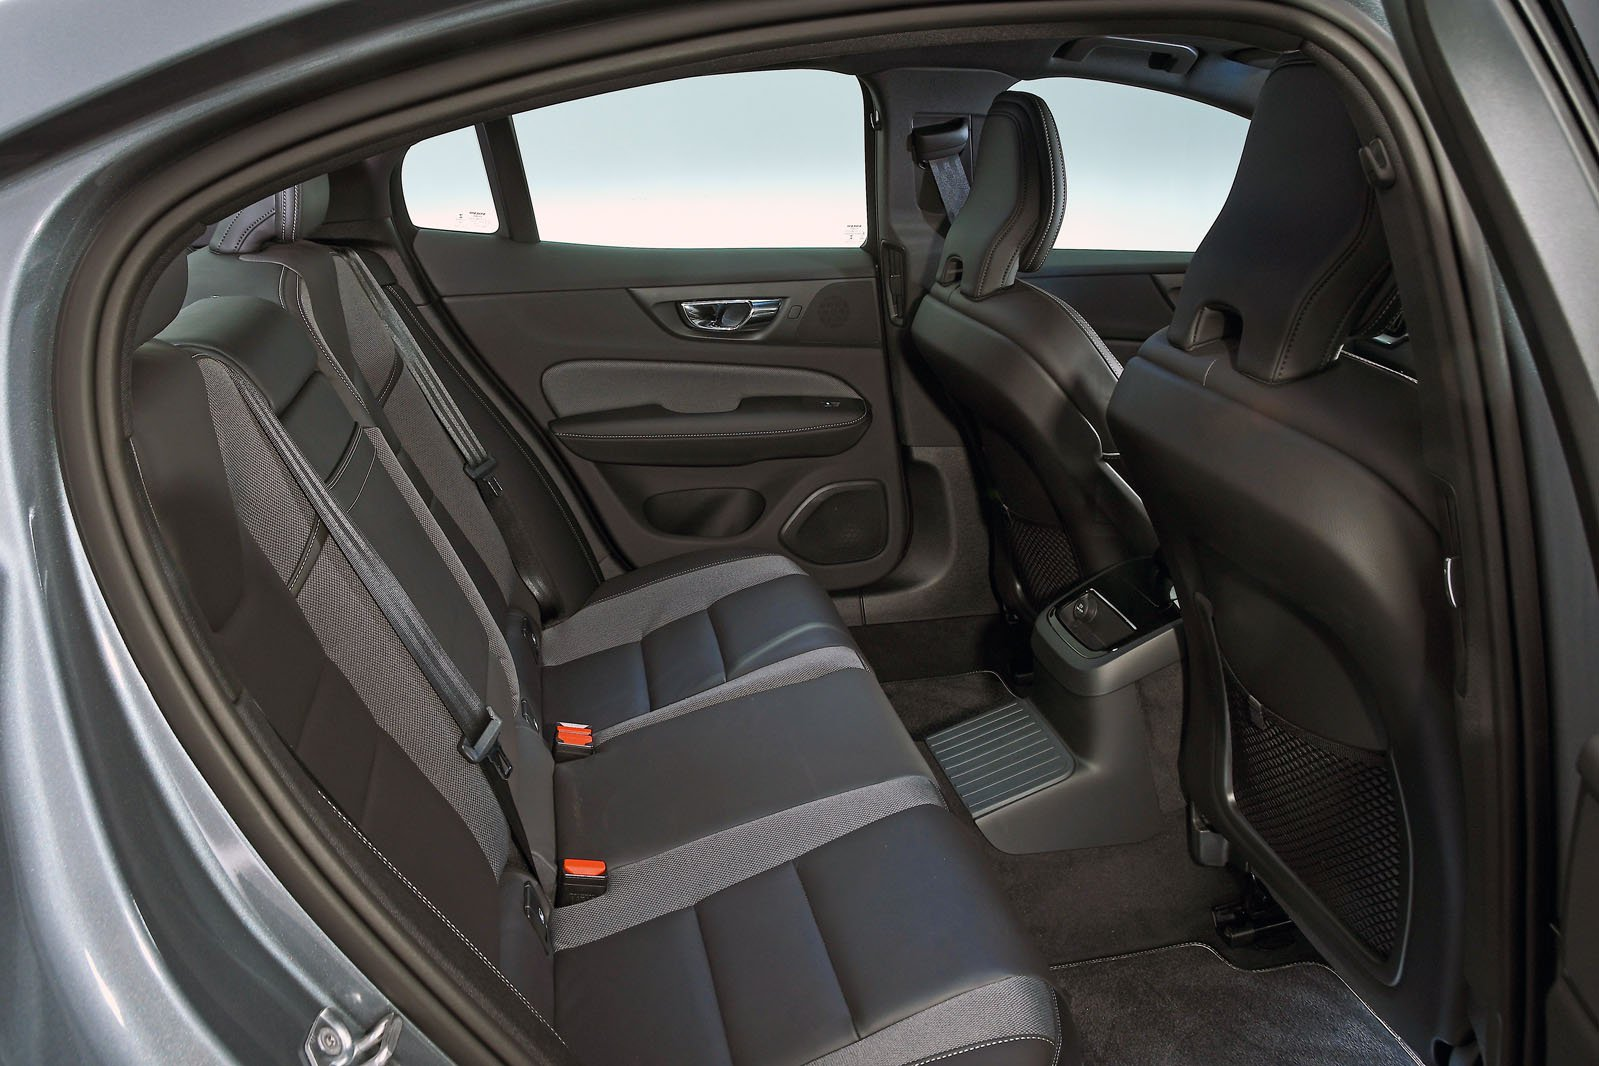 Volvo S60 rear seats